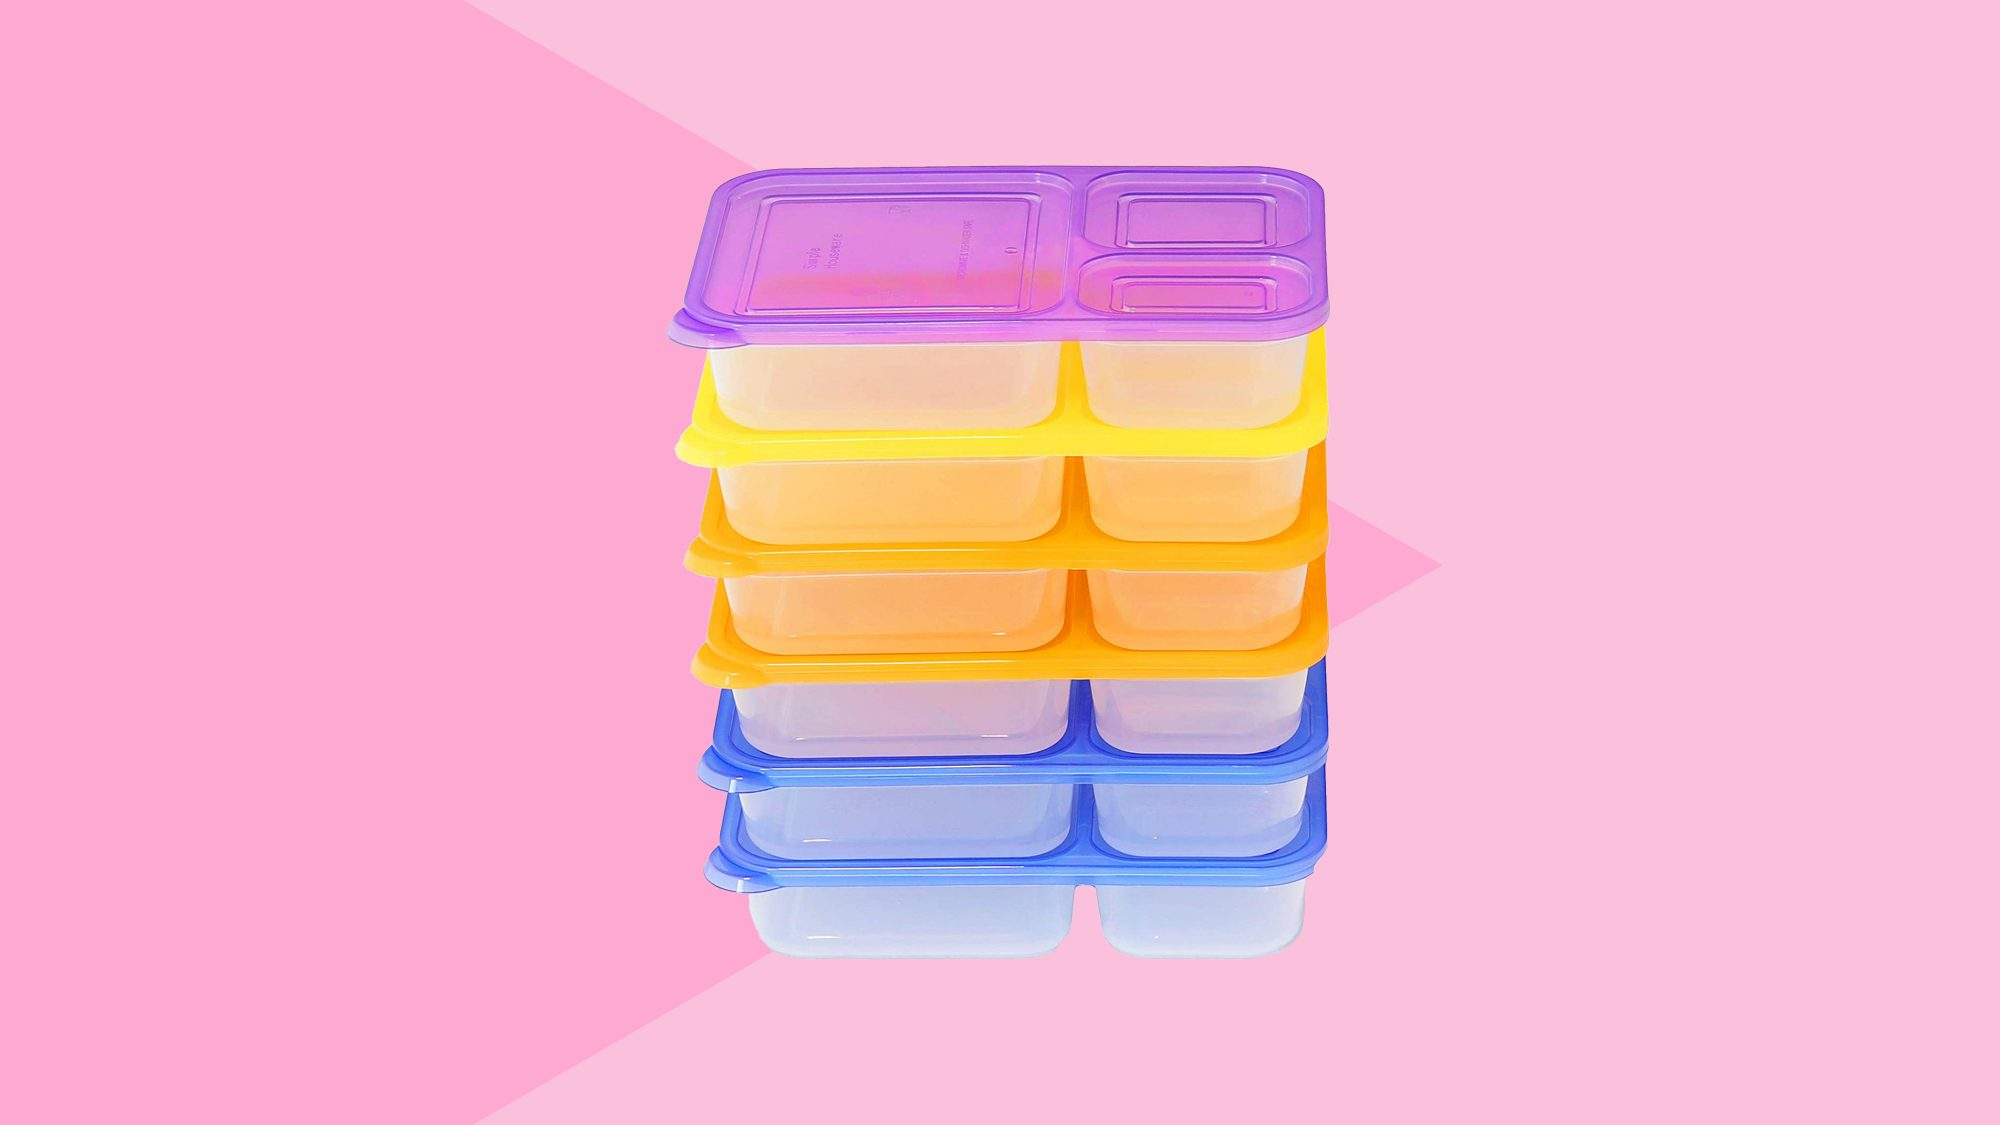 6 Pack SimpleHouseware 3-Compartment Heavy Duty Boxes Tout